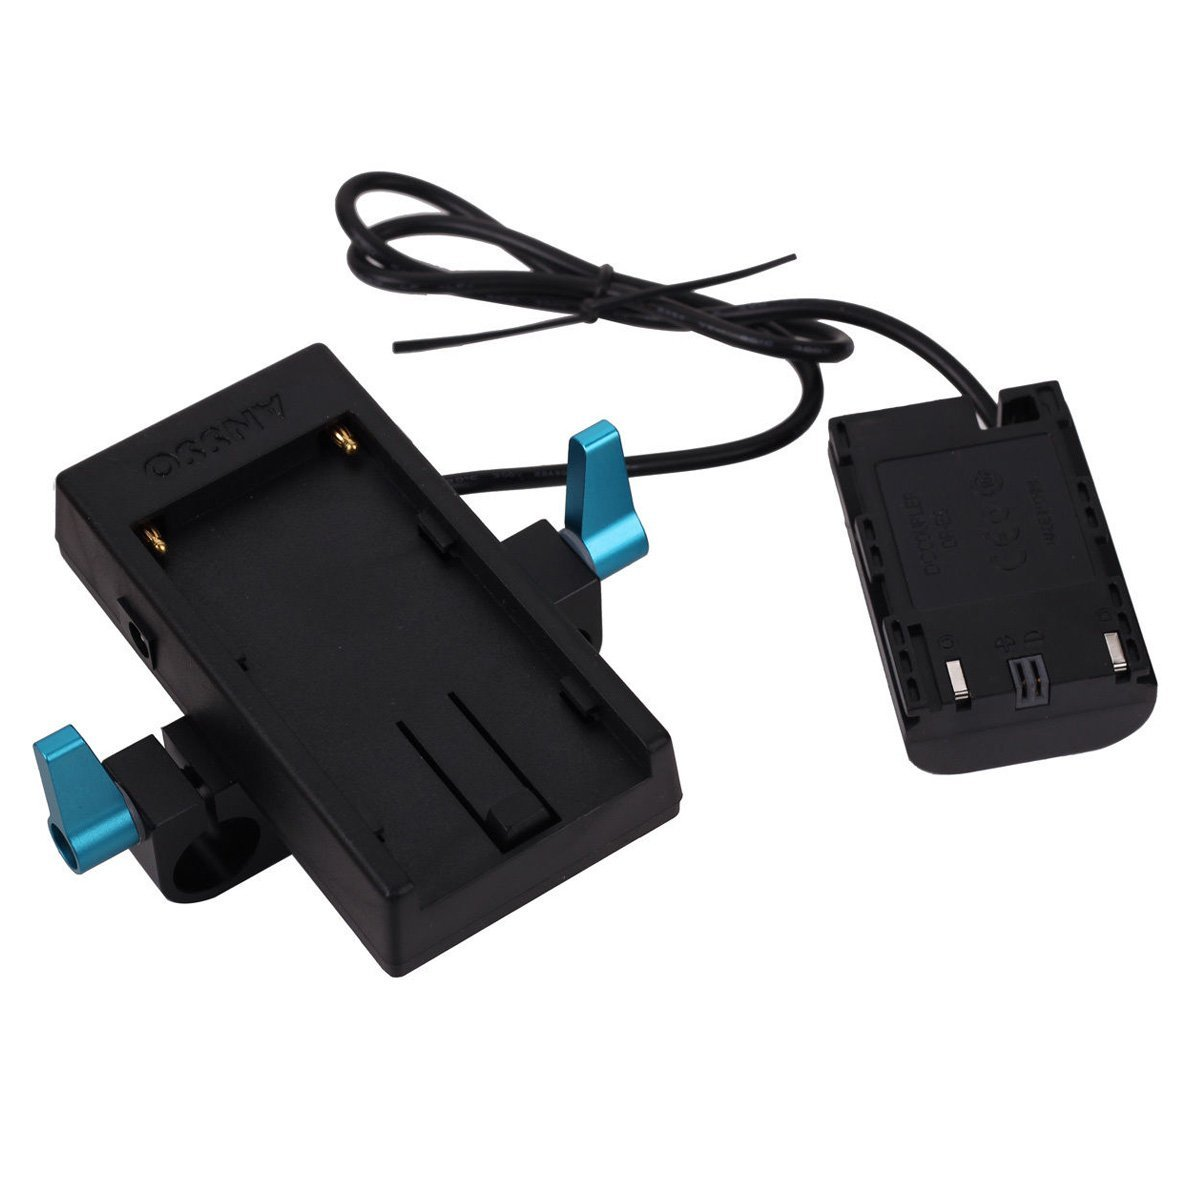 Ansso LP-E6 Dummy Battery Power Supply Plate Mount with 15mm Rod Clamp for Sony NP-F970 F Series Battery